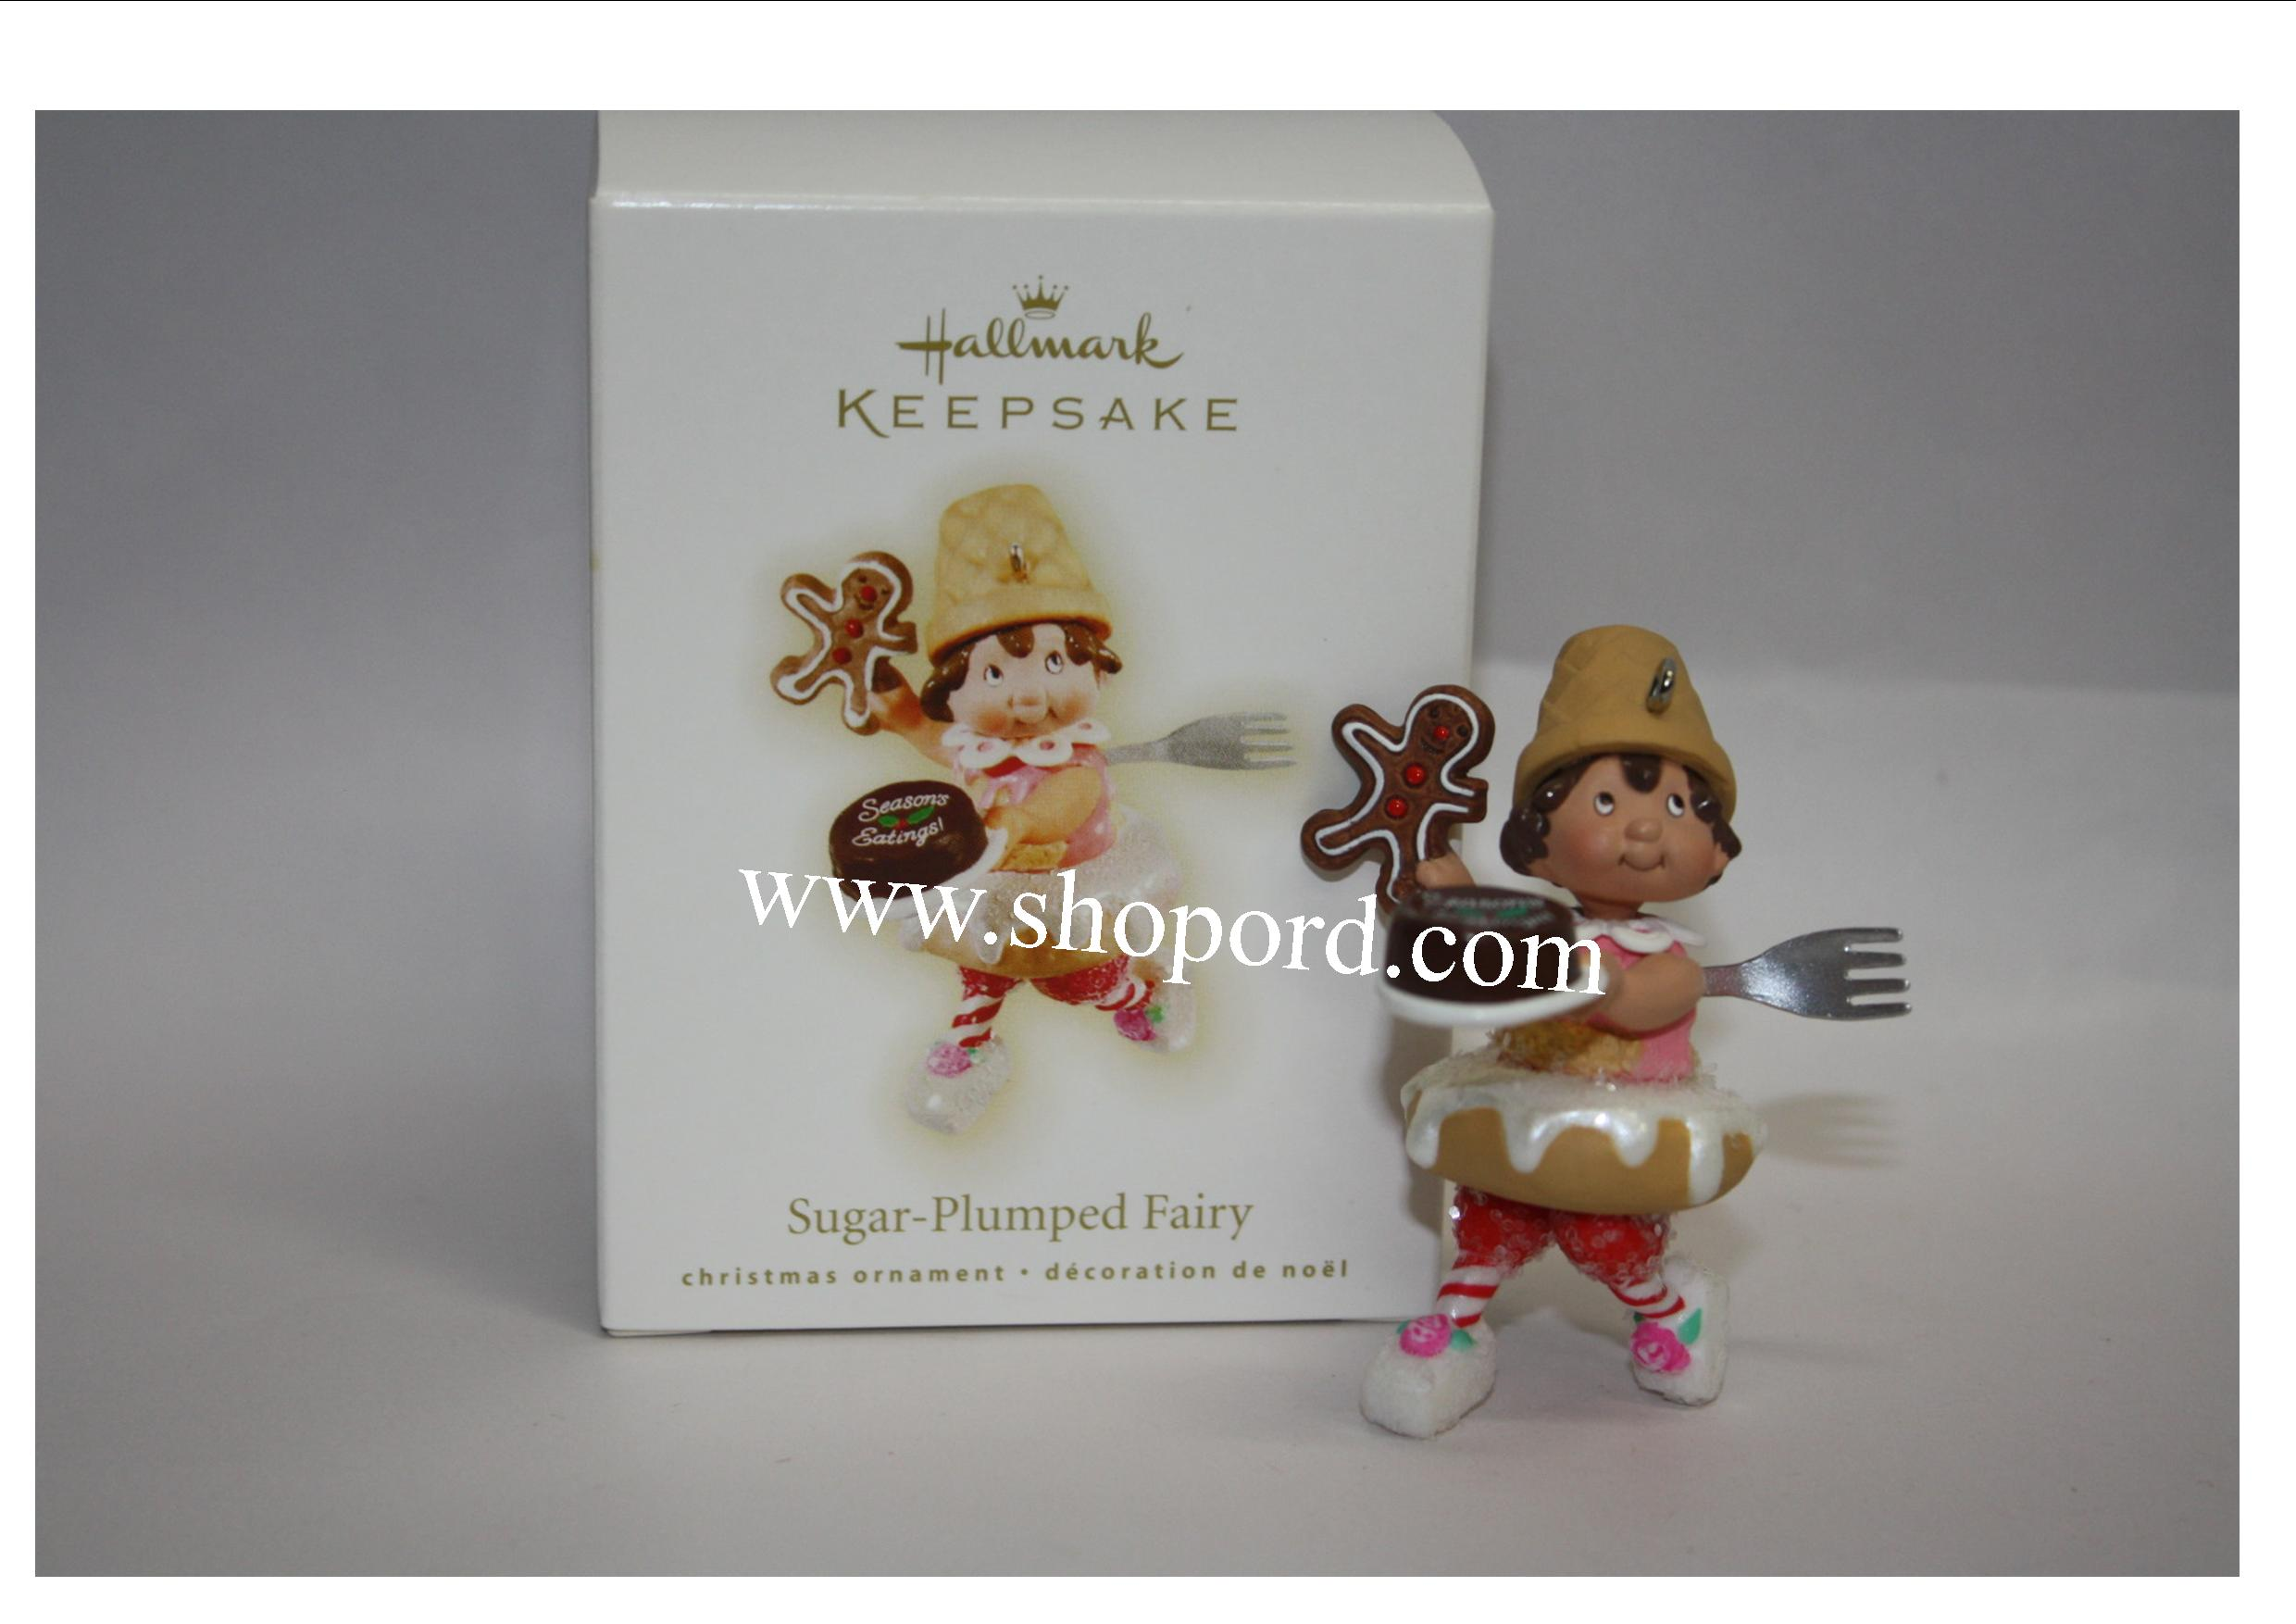 Hallmark 2009 Sugar Plumped Fairy Ornament QXG6705